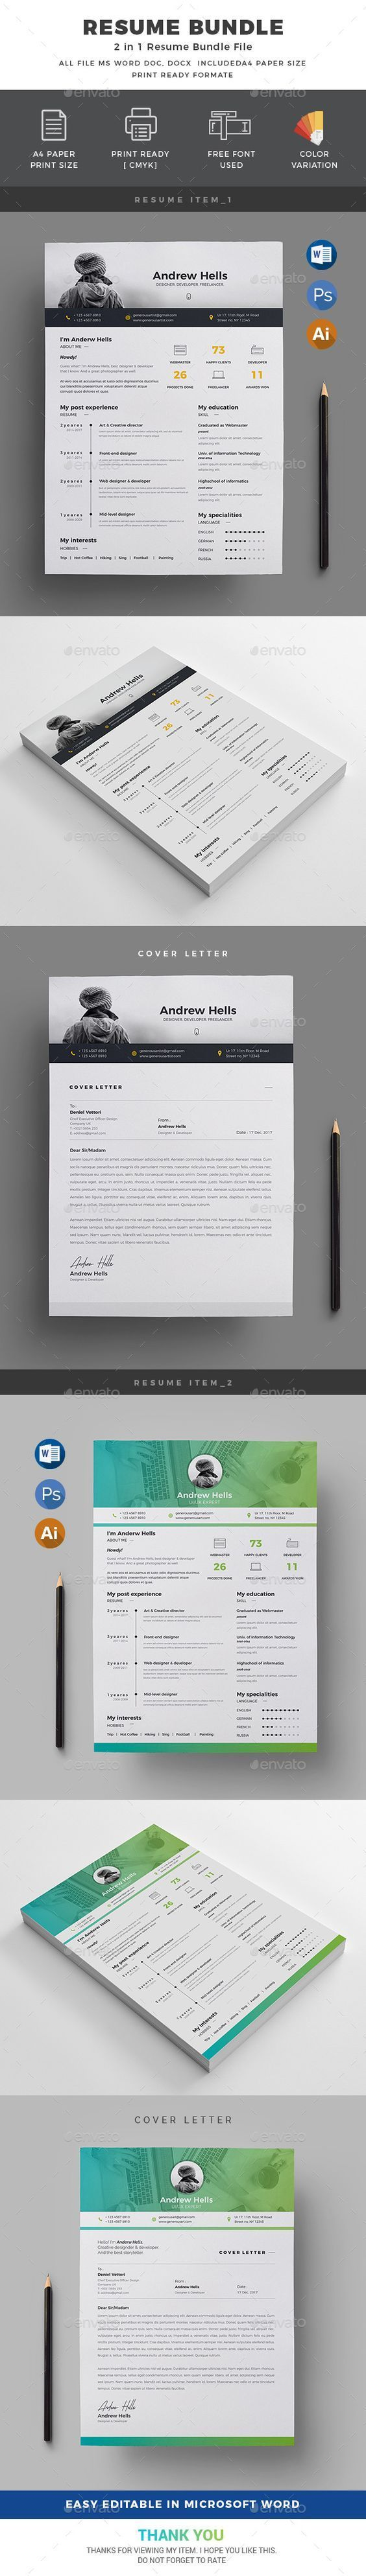 contoh format resume%0A  Resume Bundle   in    Resumes Stationery Download Here   https   graphicriver